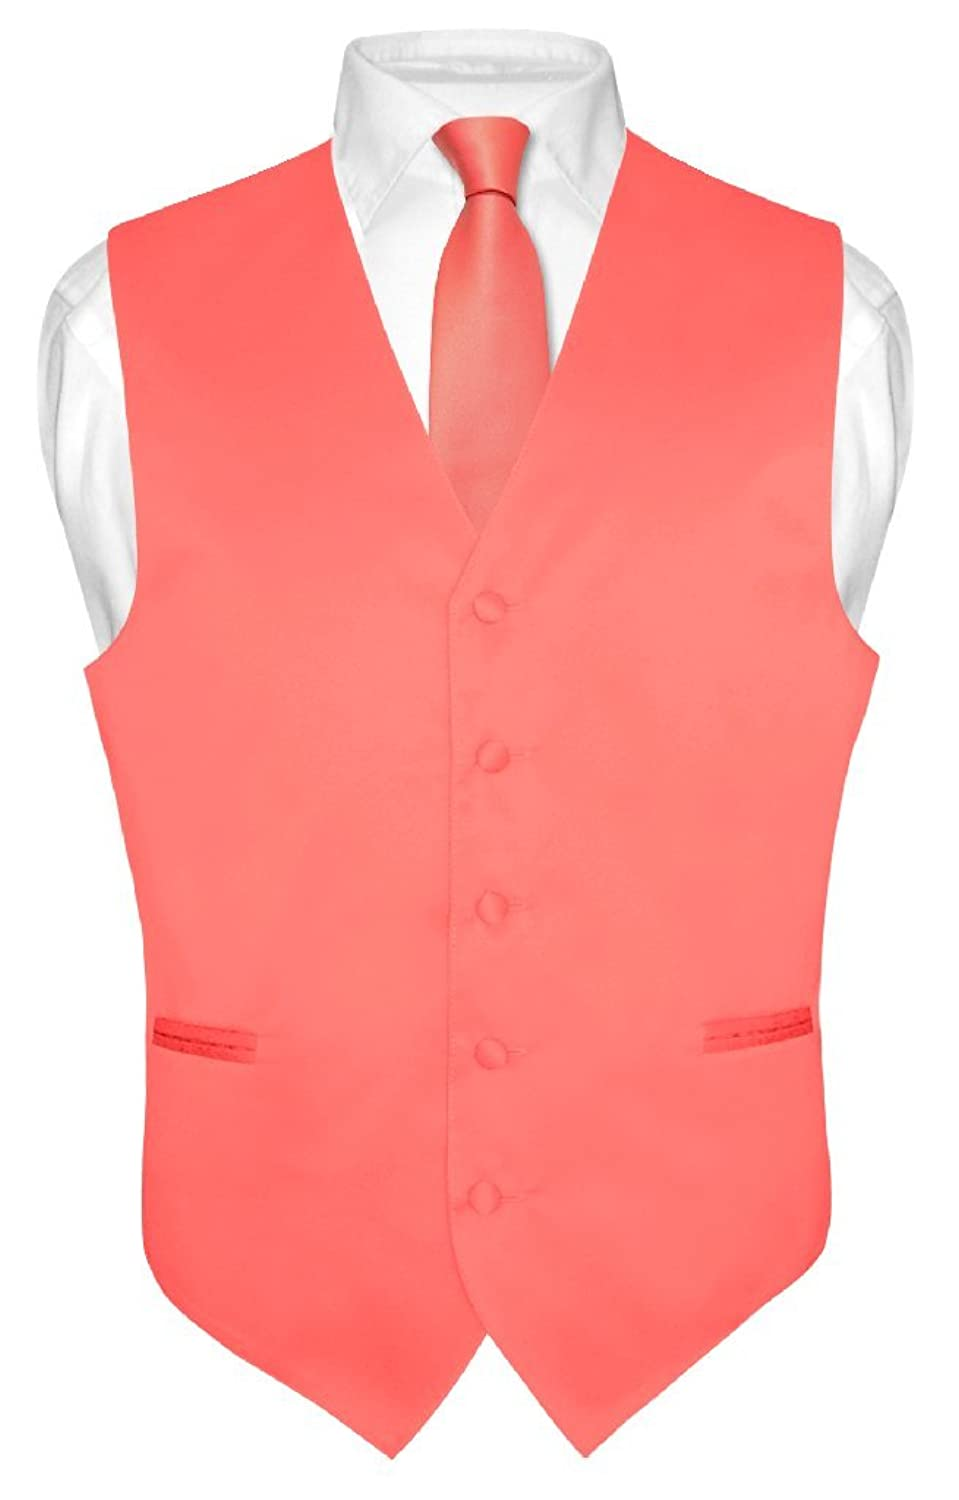 Men's Dress Vest & NeckTie Solid CORAL PINK Color Neck Tie Set for Suit ...